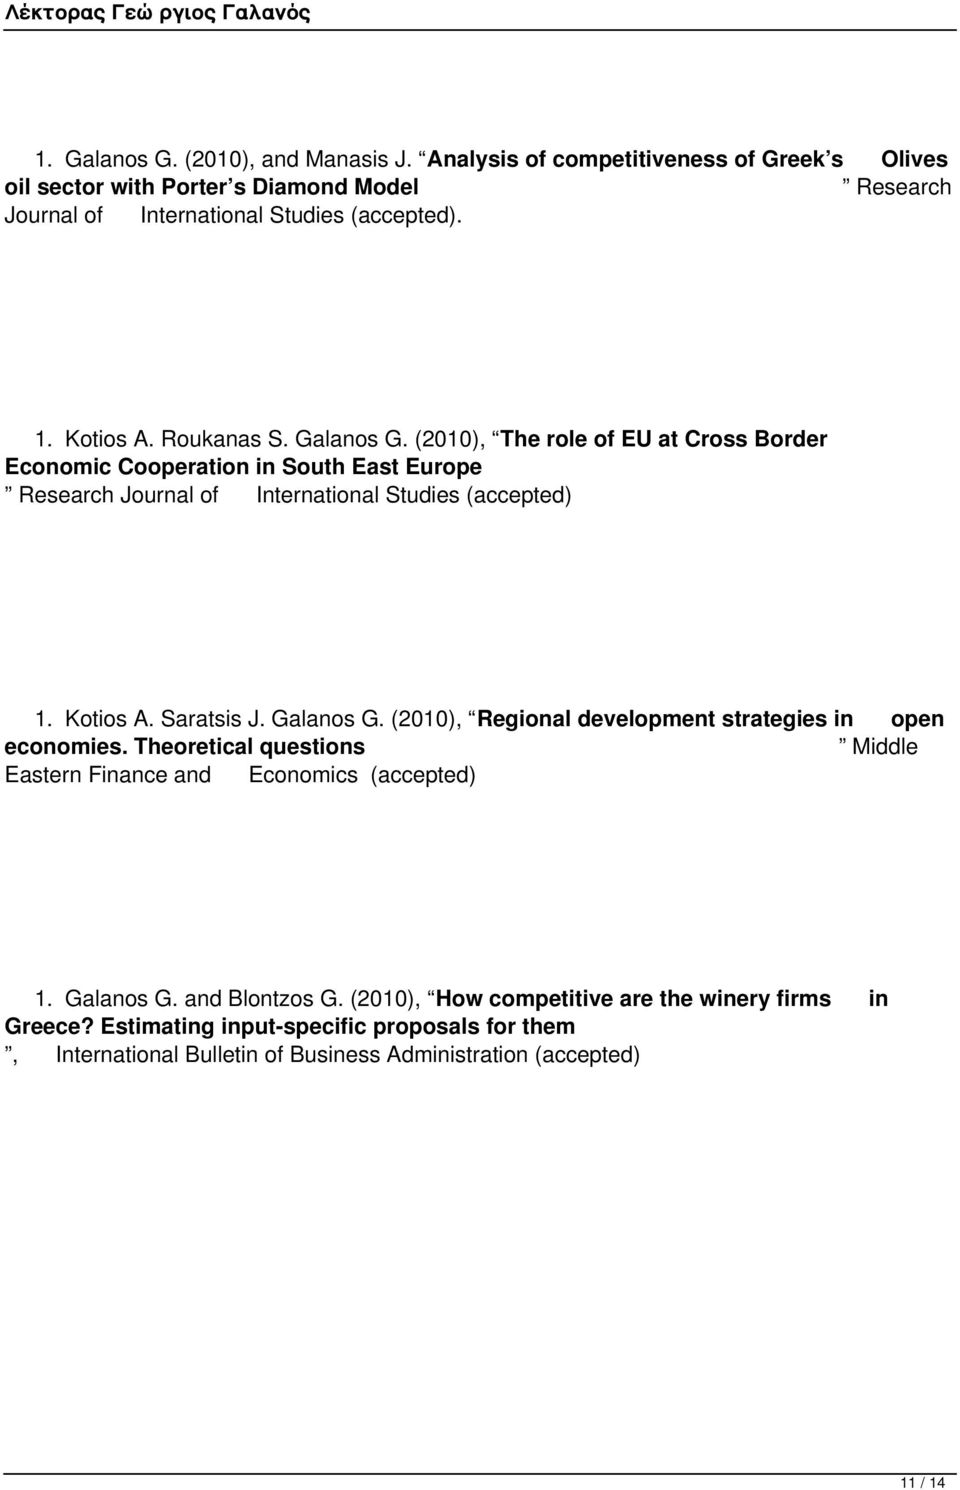 Kotios A. Saratsis J. Galanos G. (2010), Regional development strategies in open economies. Theoretical questions Middle Eastern Finance and Economics (accepted) 1. Galanos G. and Blontzos G.